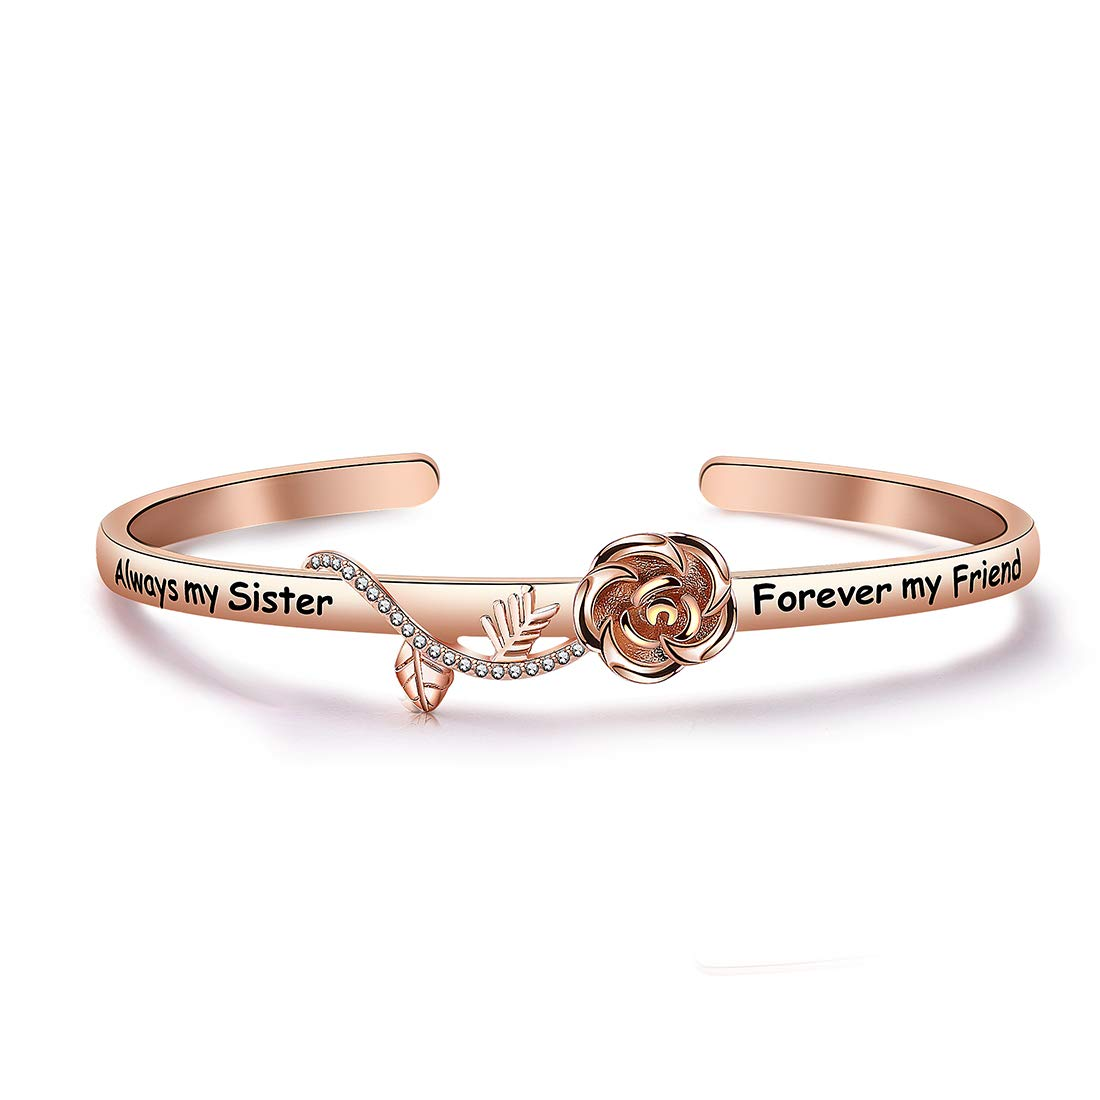 HOLLP Best Friend Bracelet Sister Gift Always My Sister Forever My Friend Cuff Bracelet with Rose Flower Gift for Sisters Friendship Jewelry